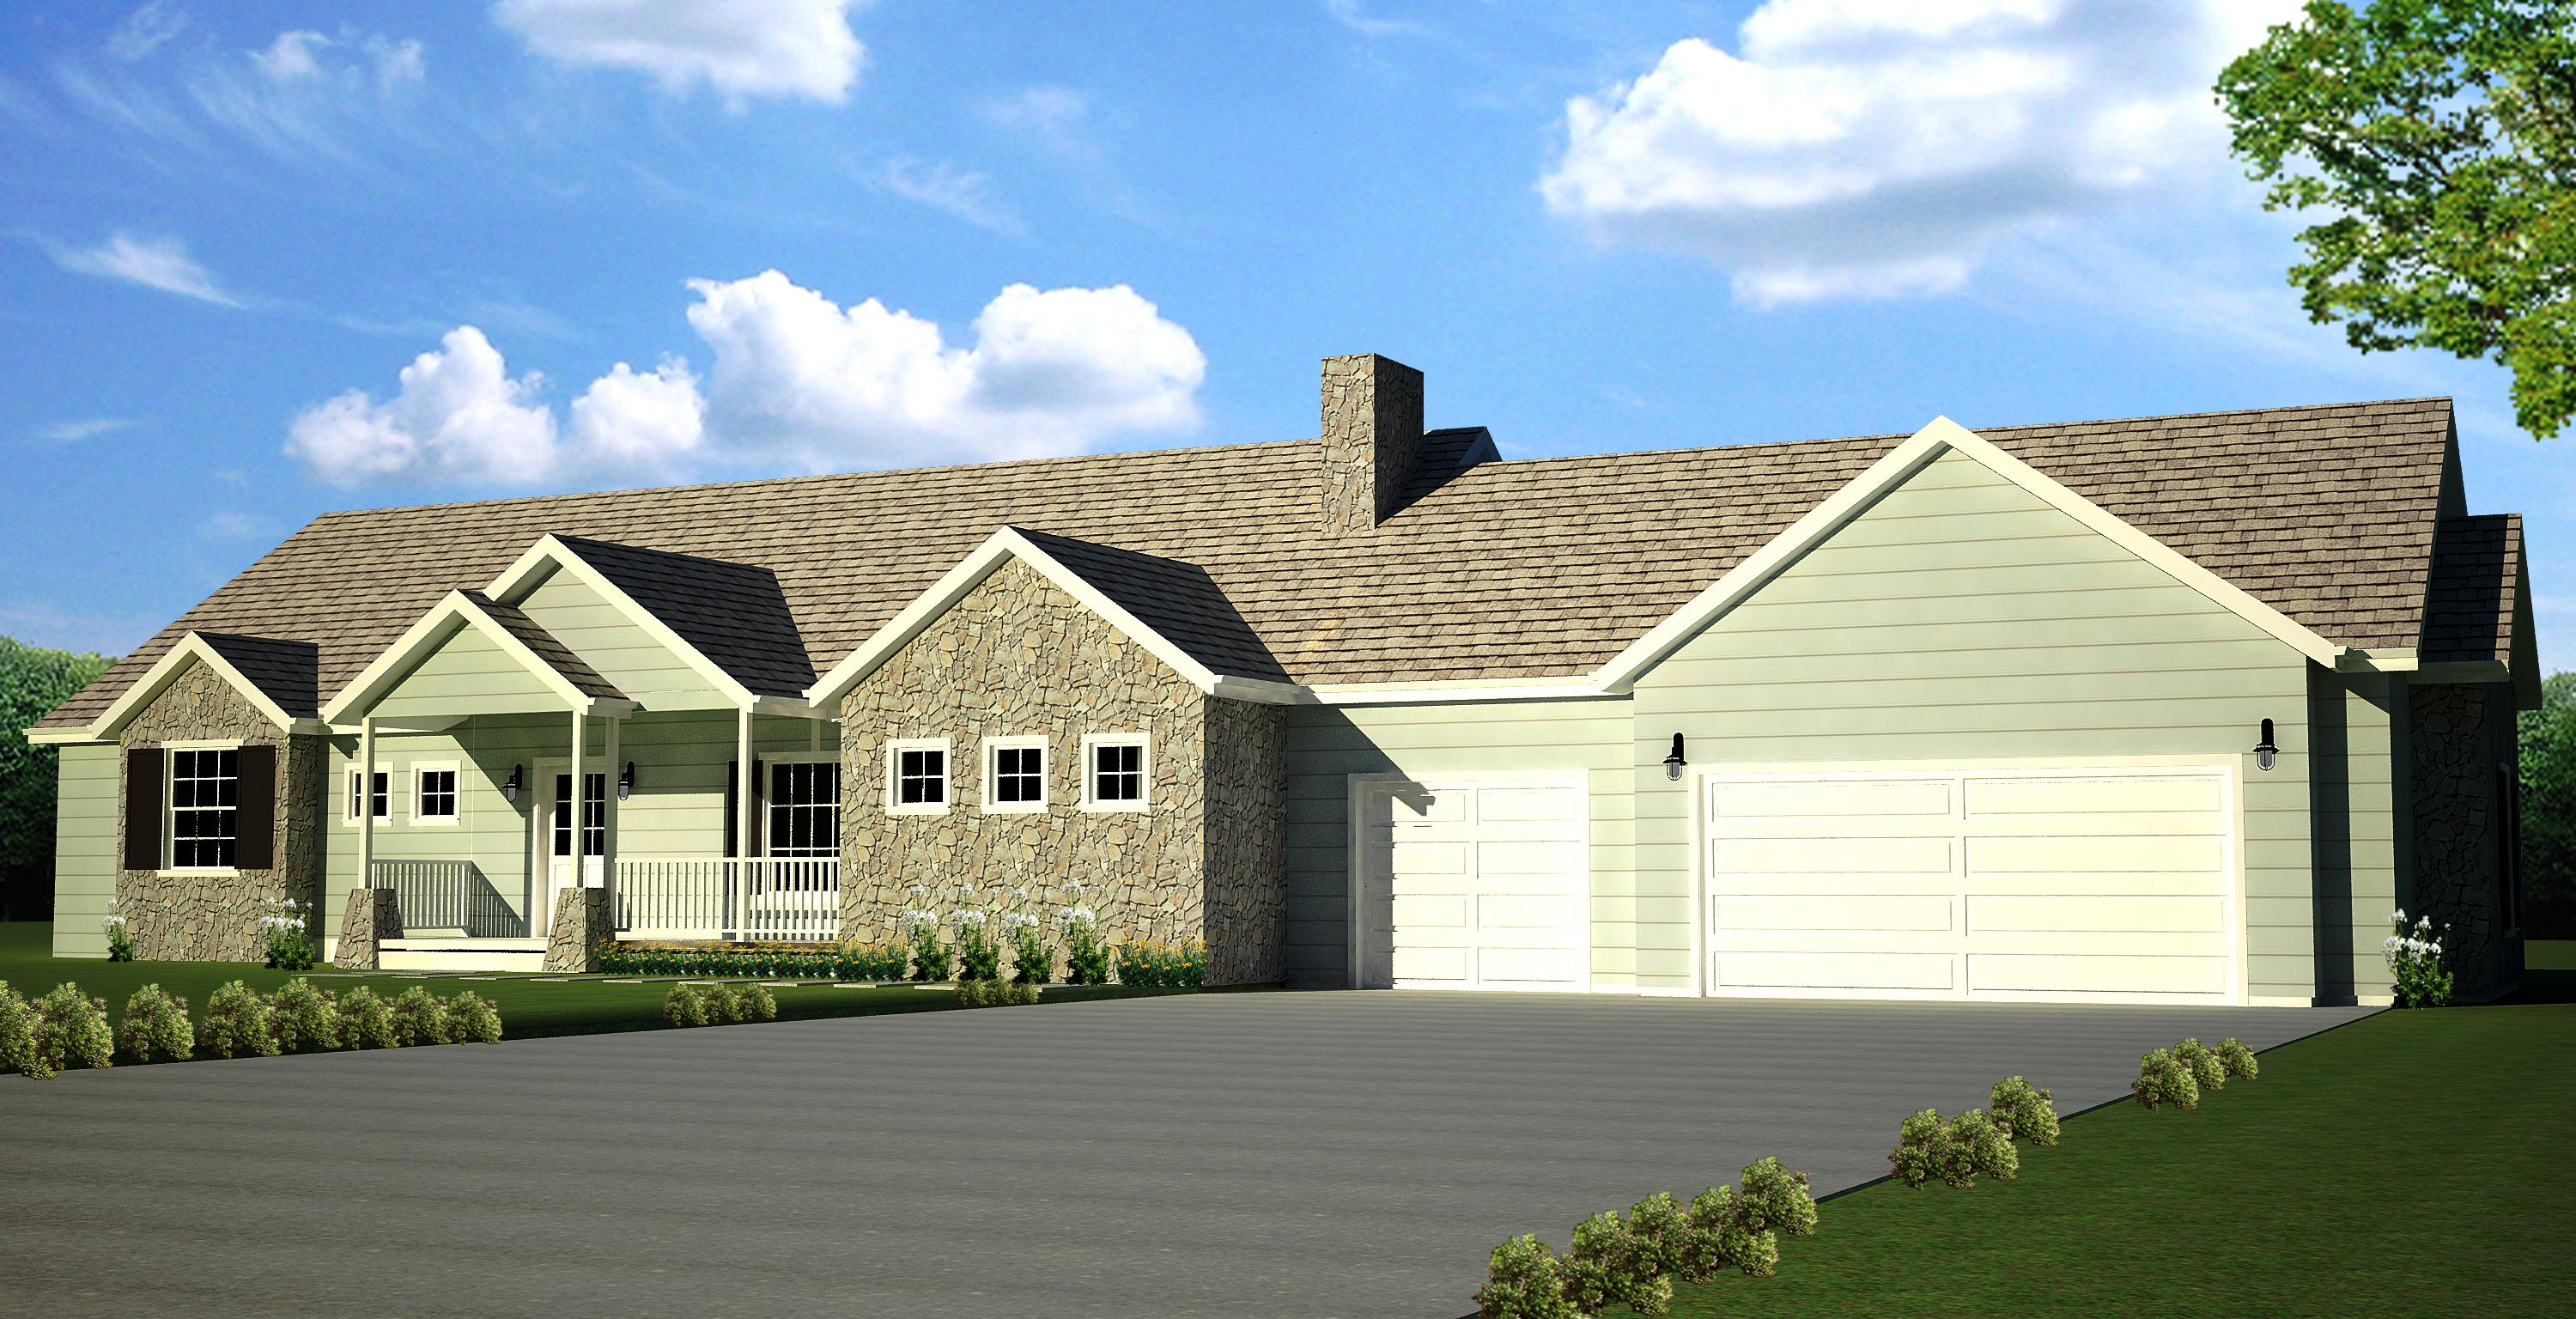 2000 SQ FT Main 4 Bedroom 3 Bath 3 Car Garage – 2000 Sq Ft House Plans With 3 Car Garage